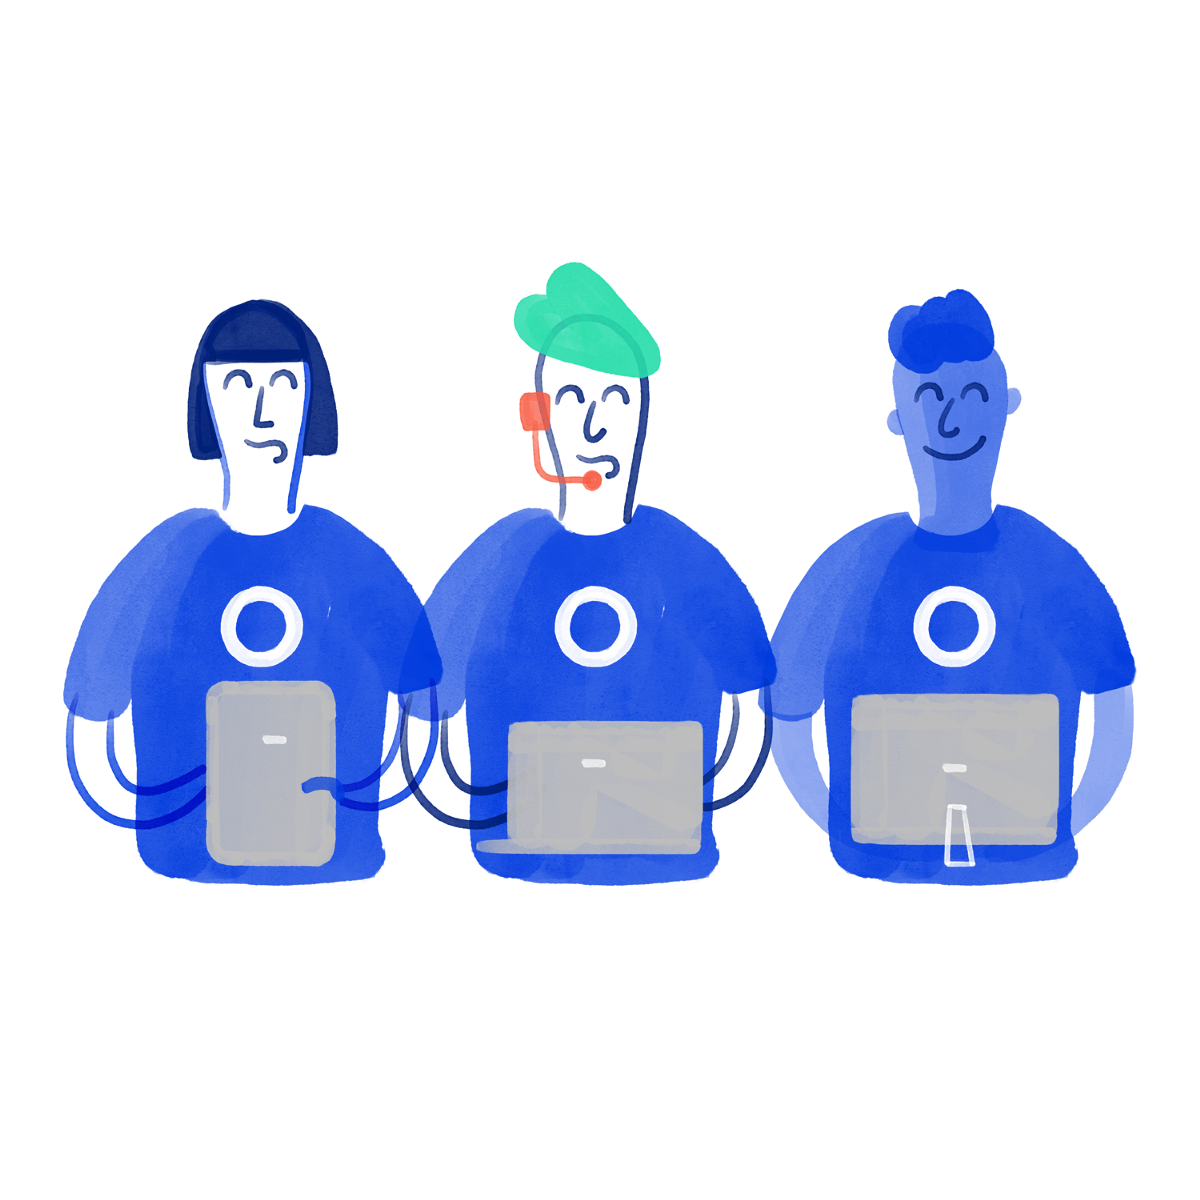 Engineer clipart techy. Machine learning virtual care